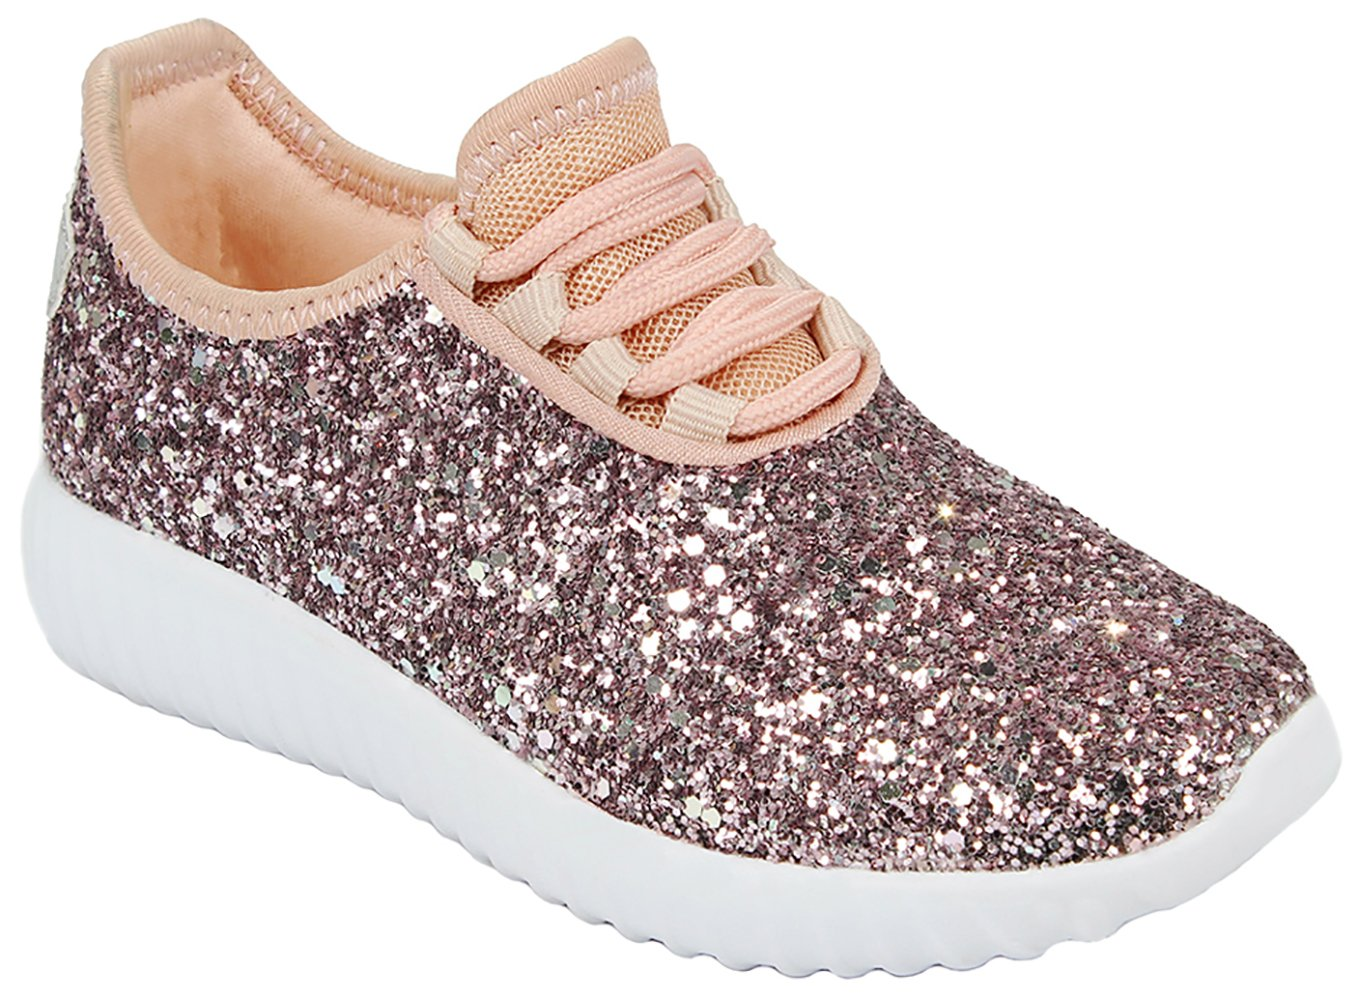 Women Fashion Metallic Sequins Glitter Lace up Light Weight Stylish Sneaker Shoes B076DNP94D 6.5 B(M) US|Pink